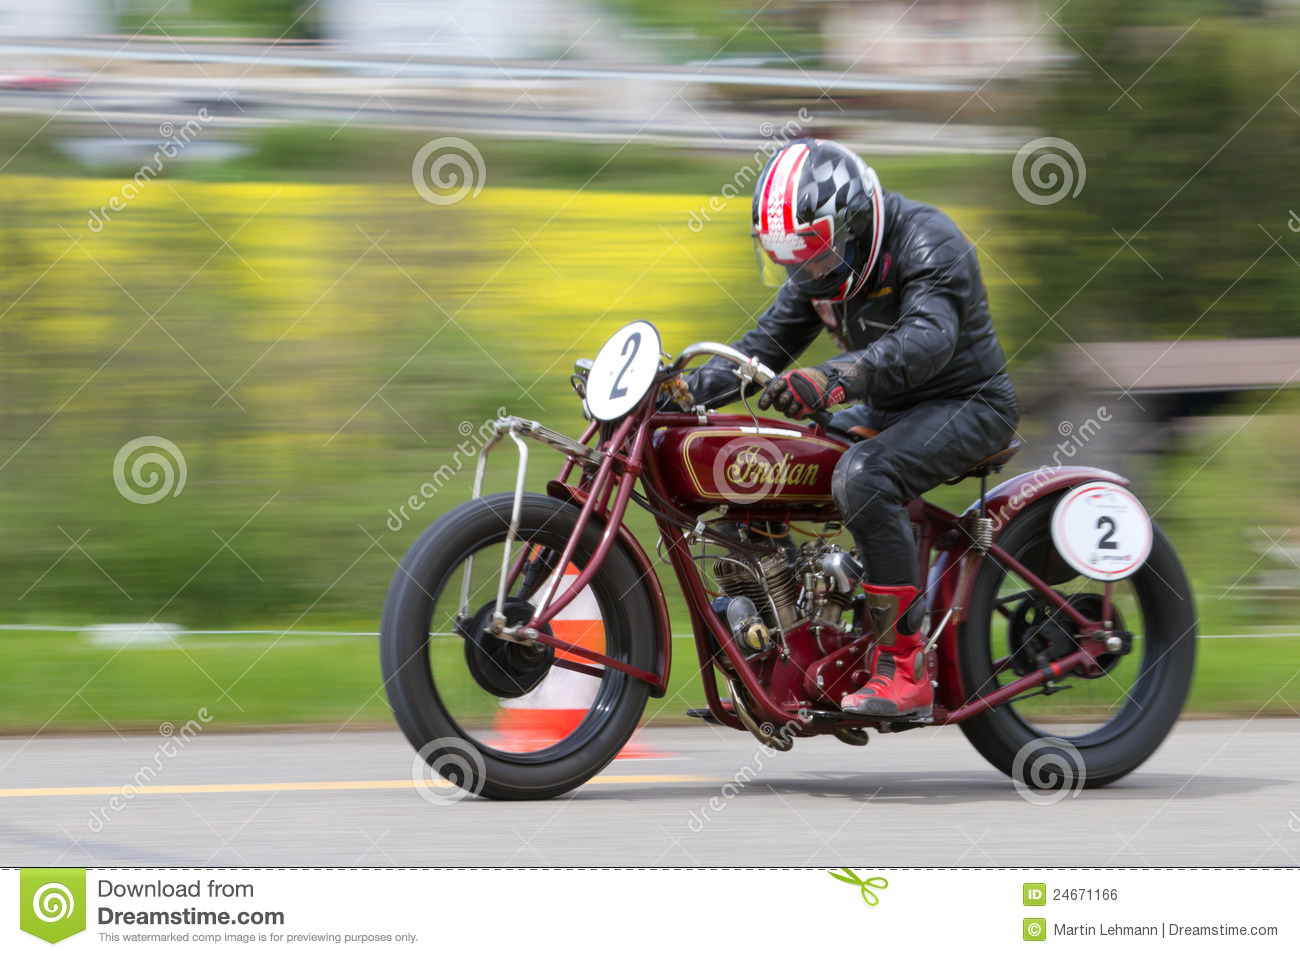 072617-2018-indian-scout-sixty - Motorcycle.com